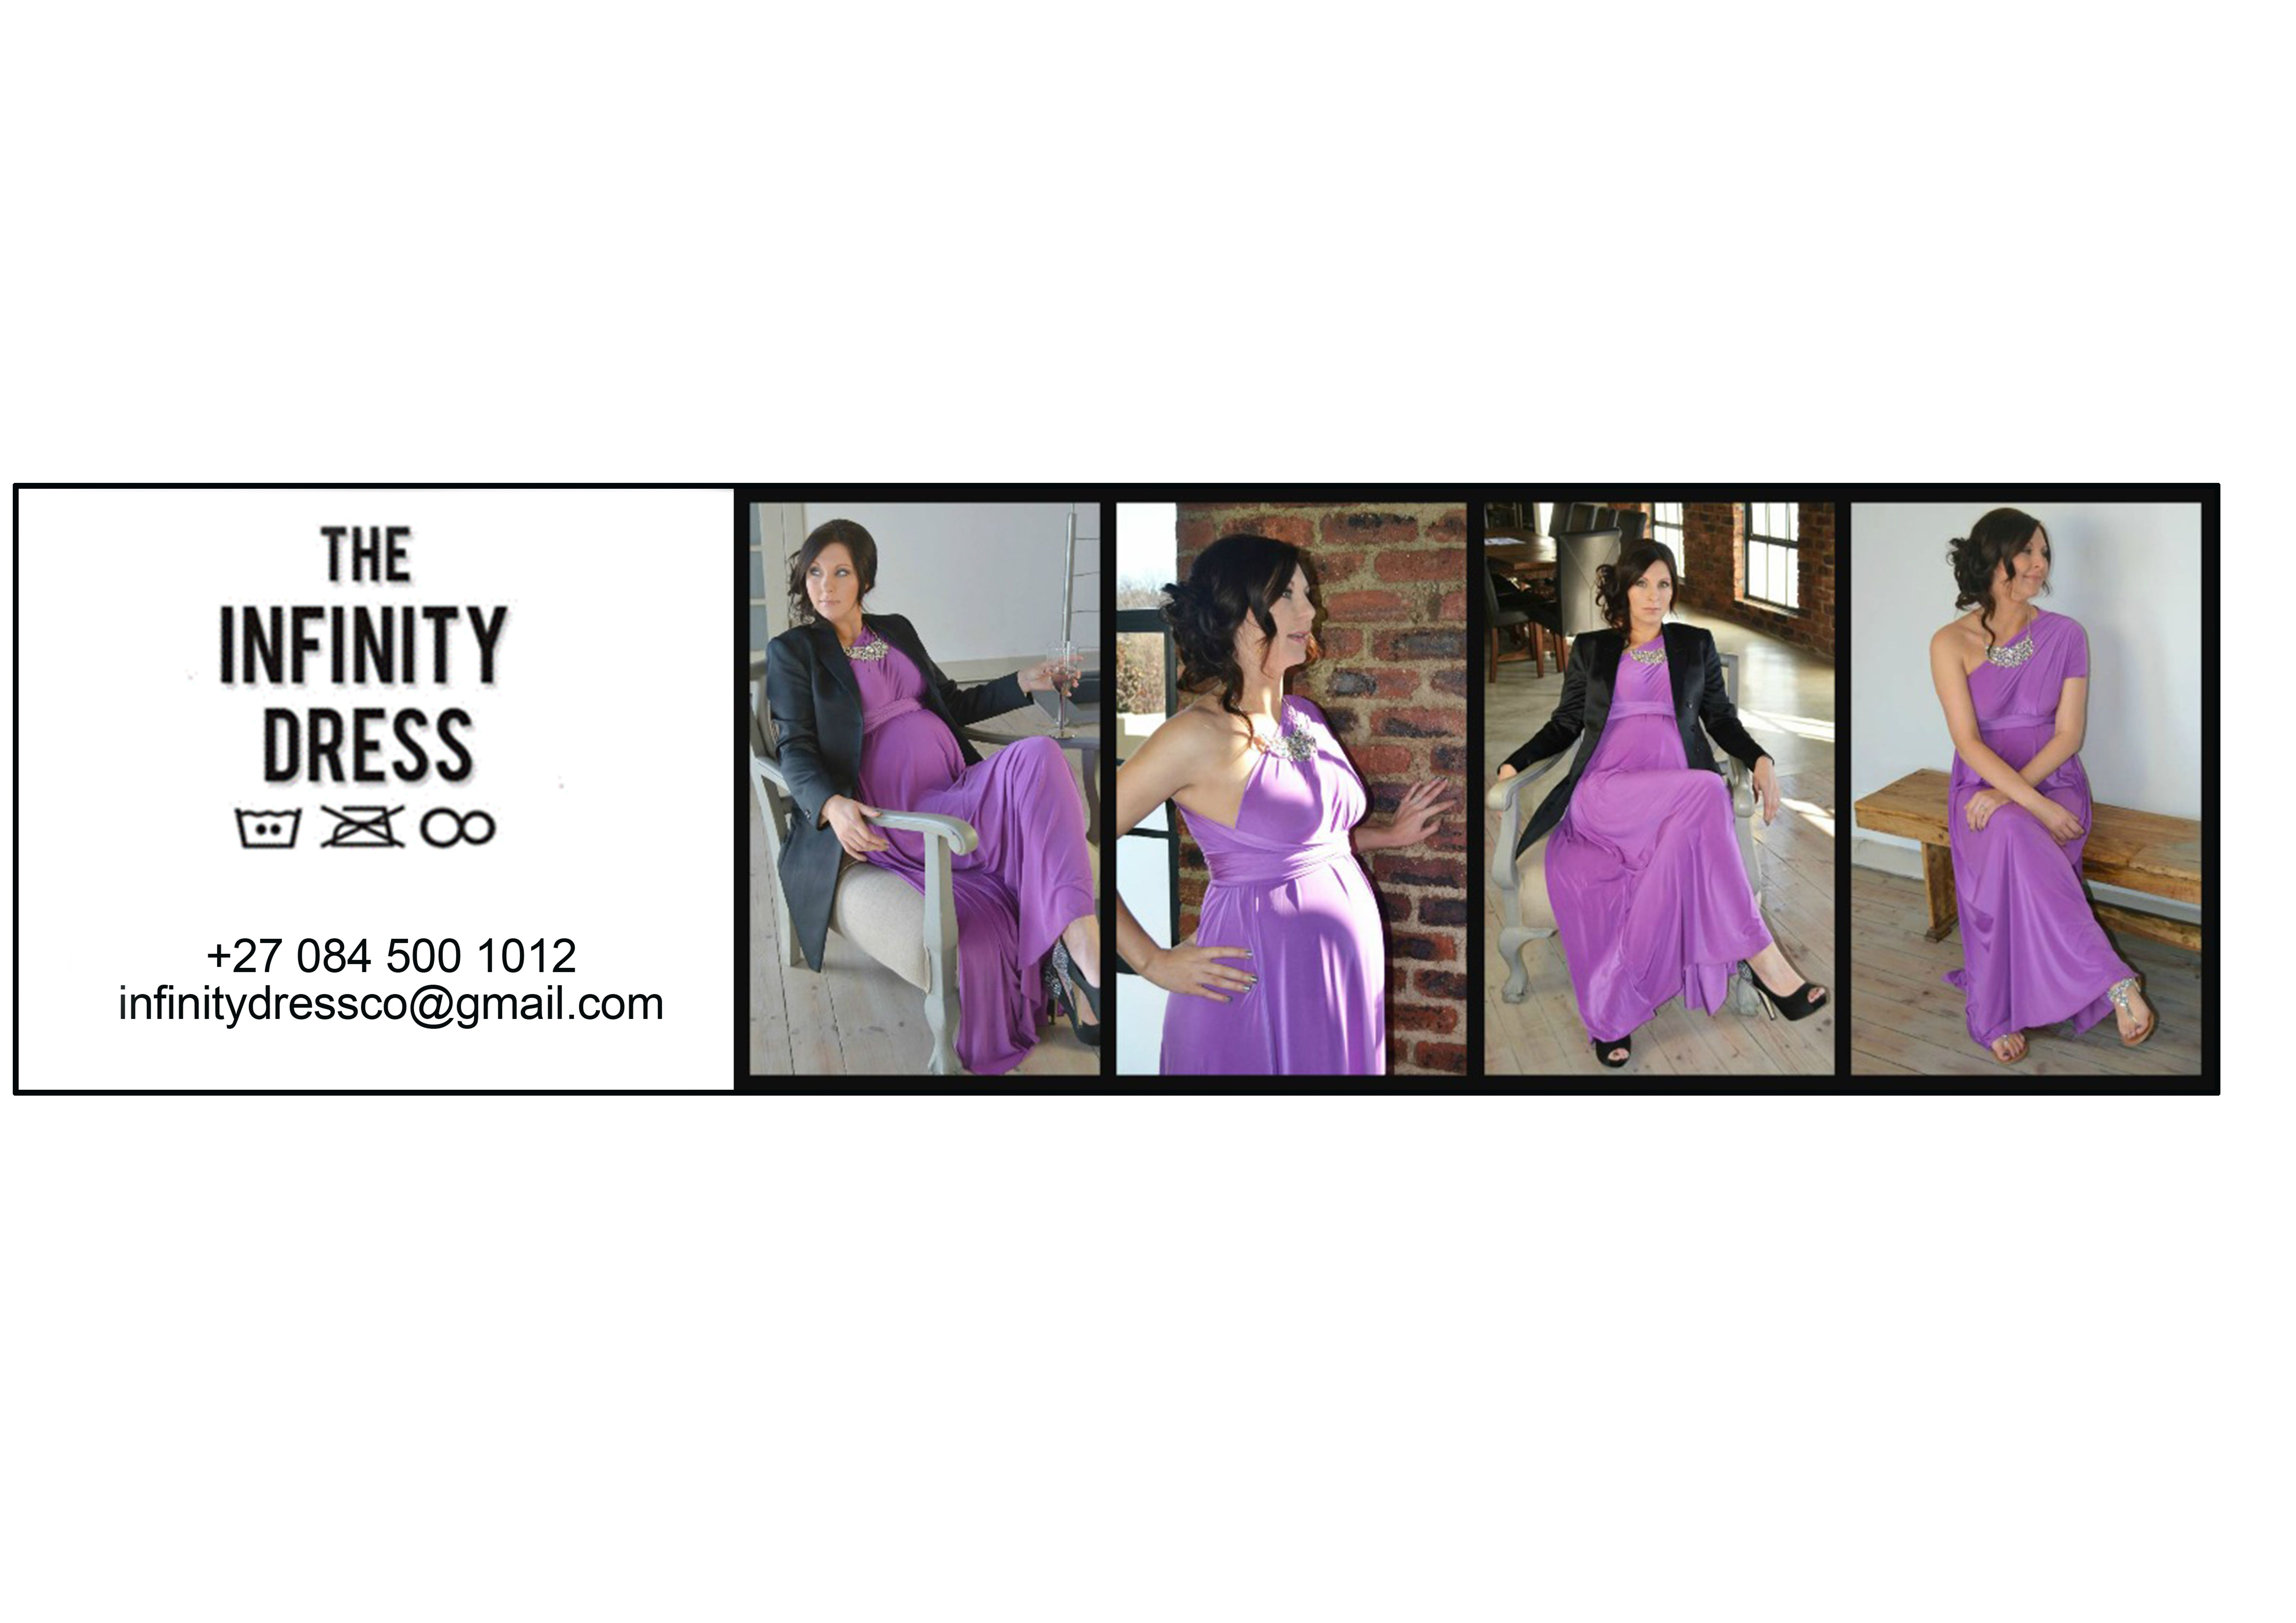 Using this collage for the Infinity dress co swing tickets.